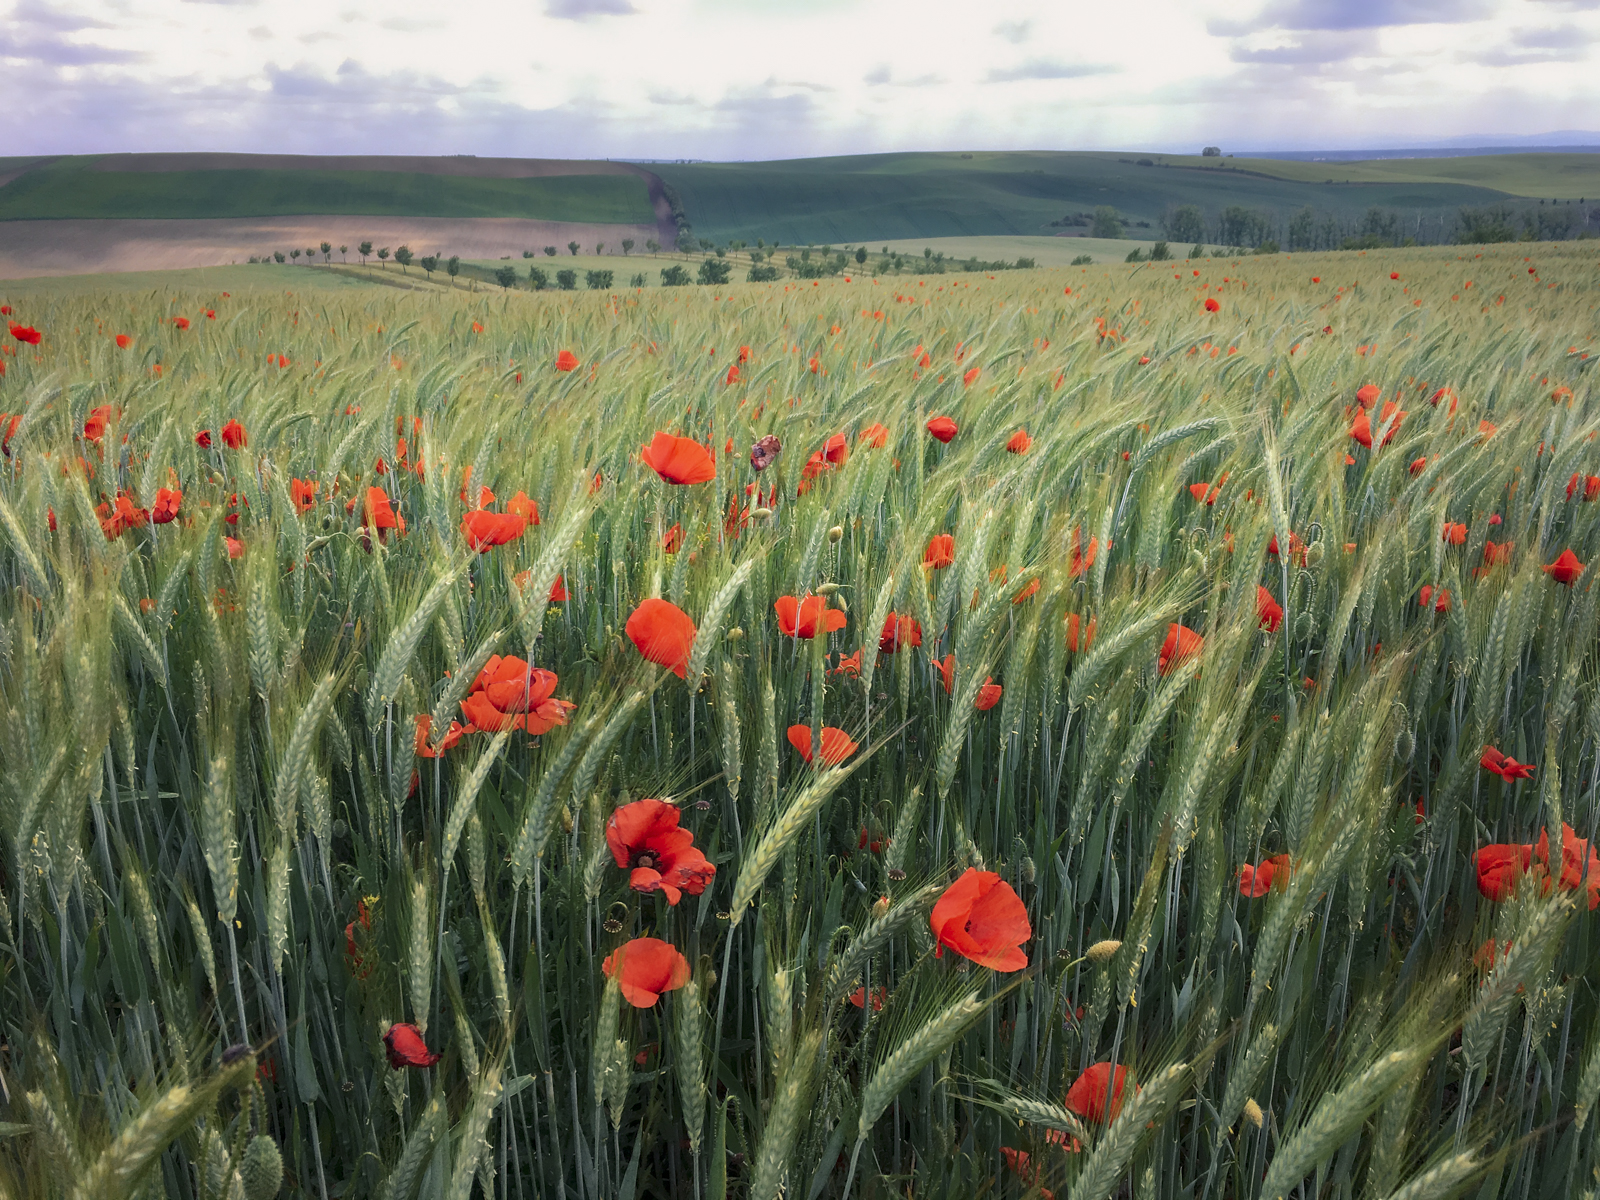 Blooming poppies at South Moravian meadow, Czech Republic